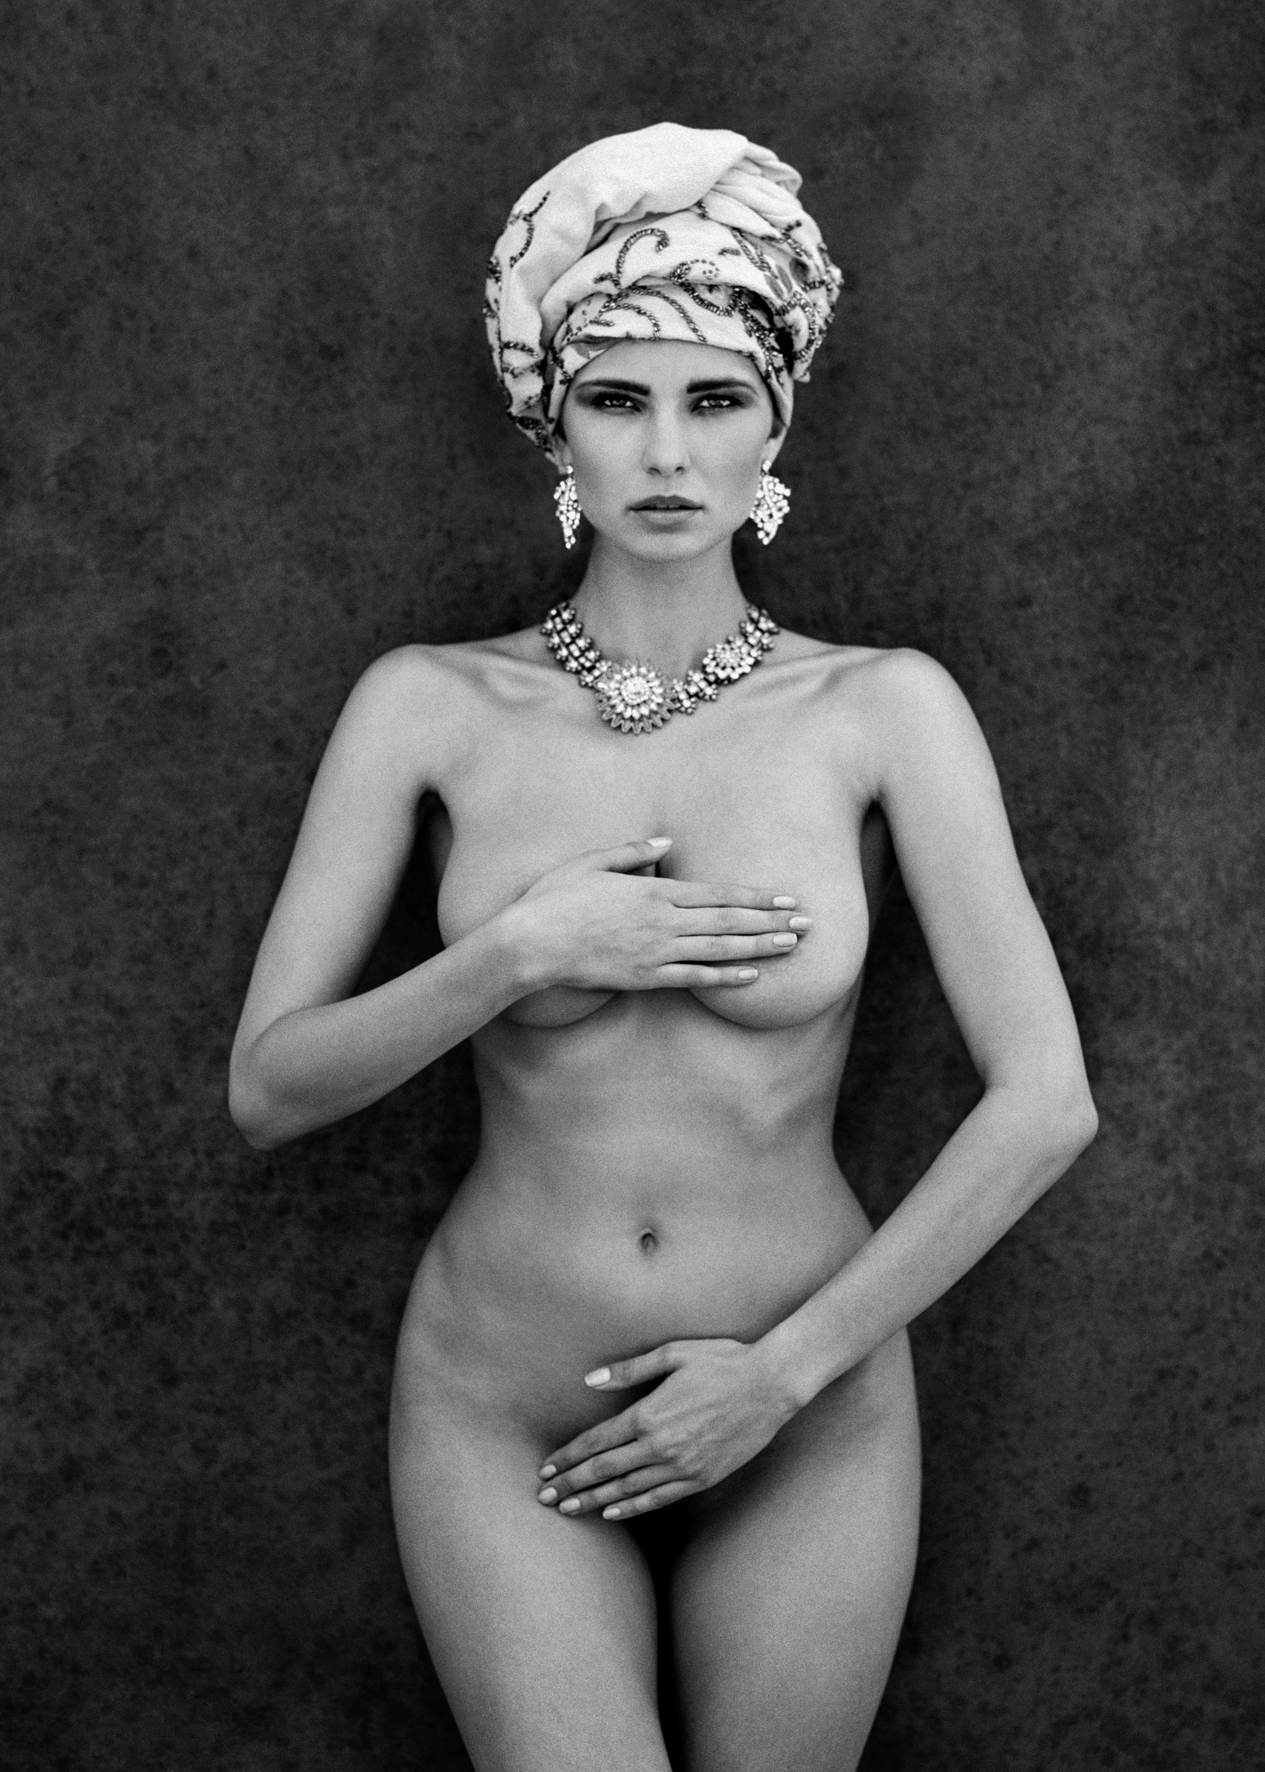 © Senza Parole by Marc Lagrange, to be published by teNeues in September 2015, www.teneues.com. Aphrodite, Photo © 2015 Marc Lagrange. All rights reserved.